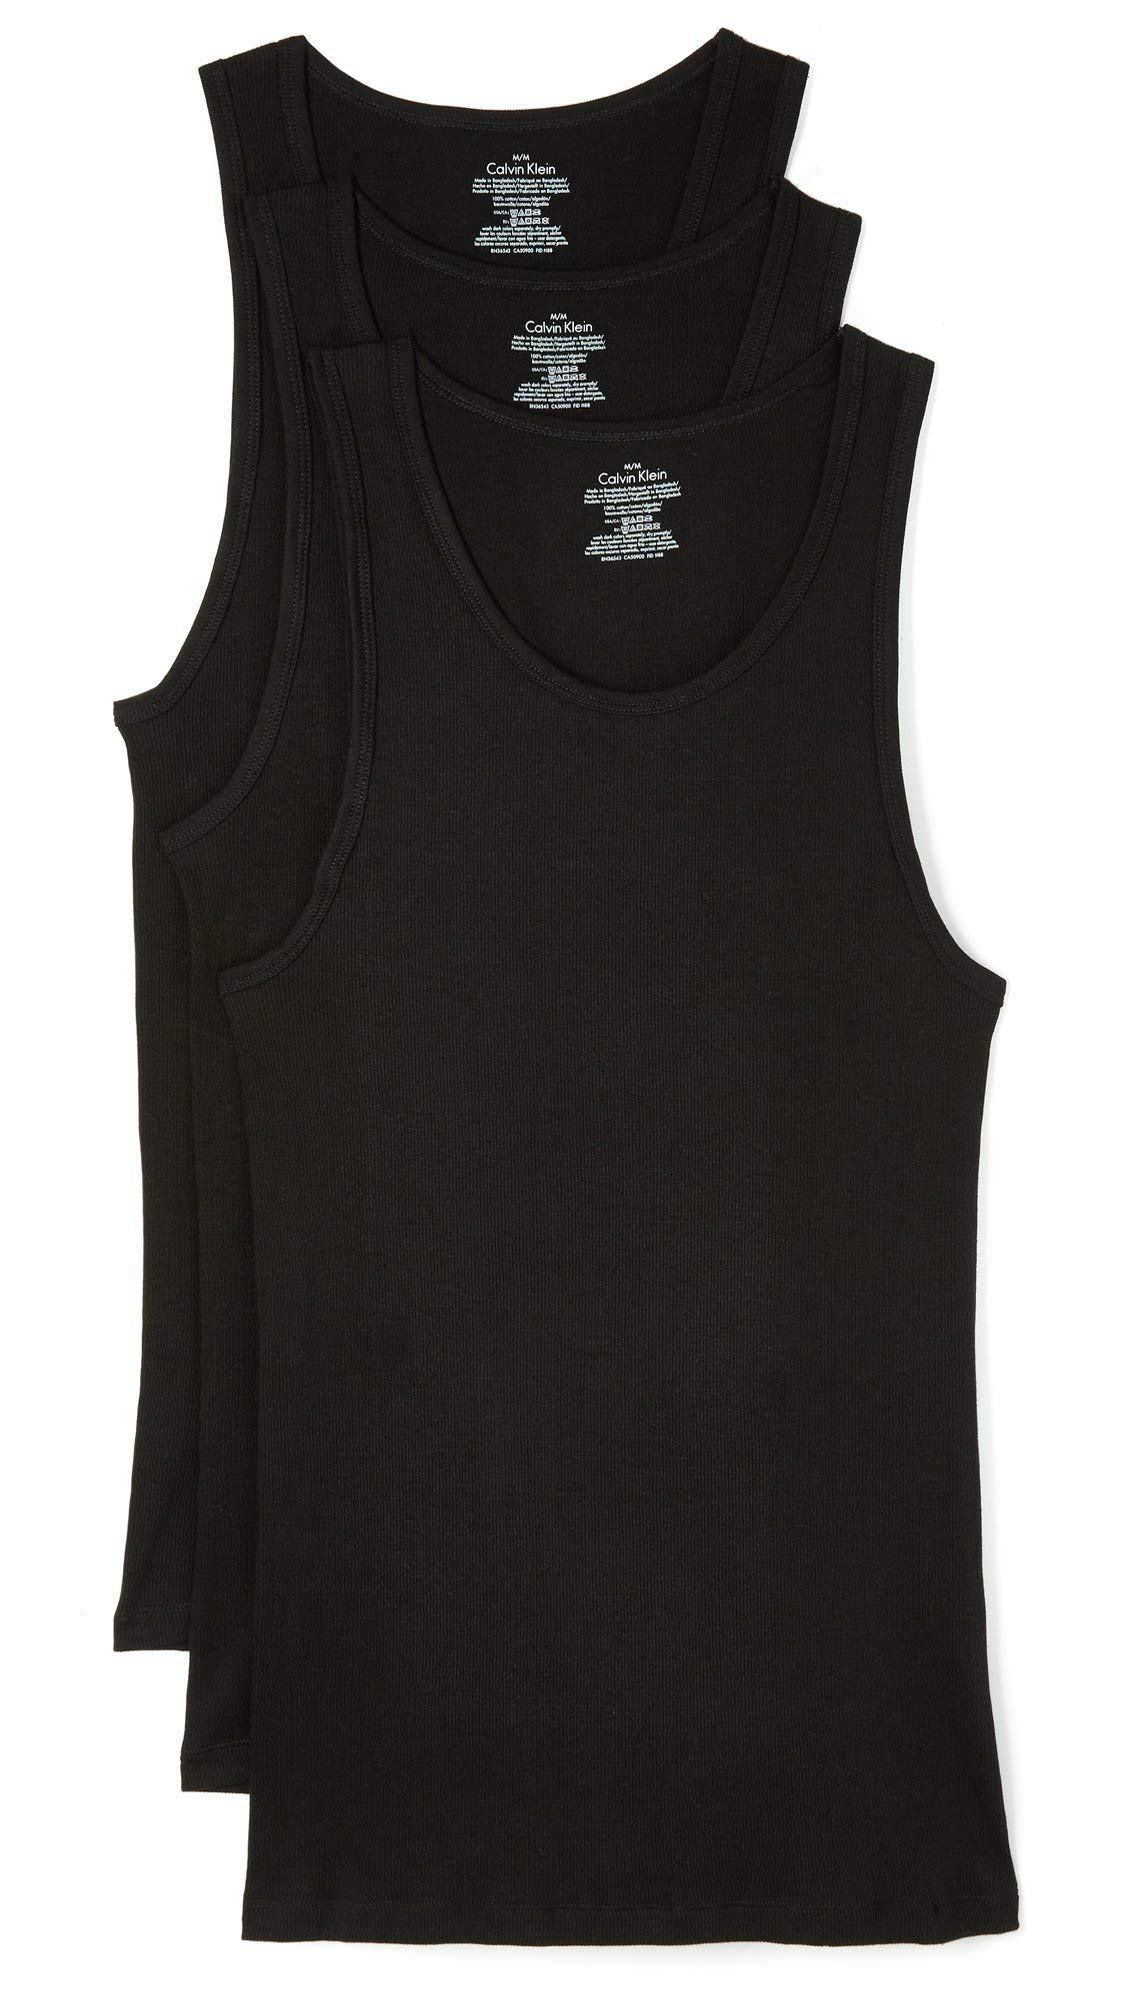 Calvin Klein Men's Cotton Classics Multipack Tanks, Black, XX-Large by Calvin Klein